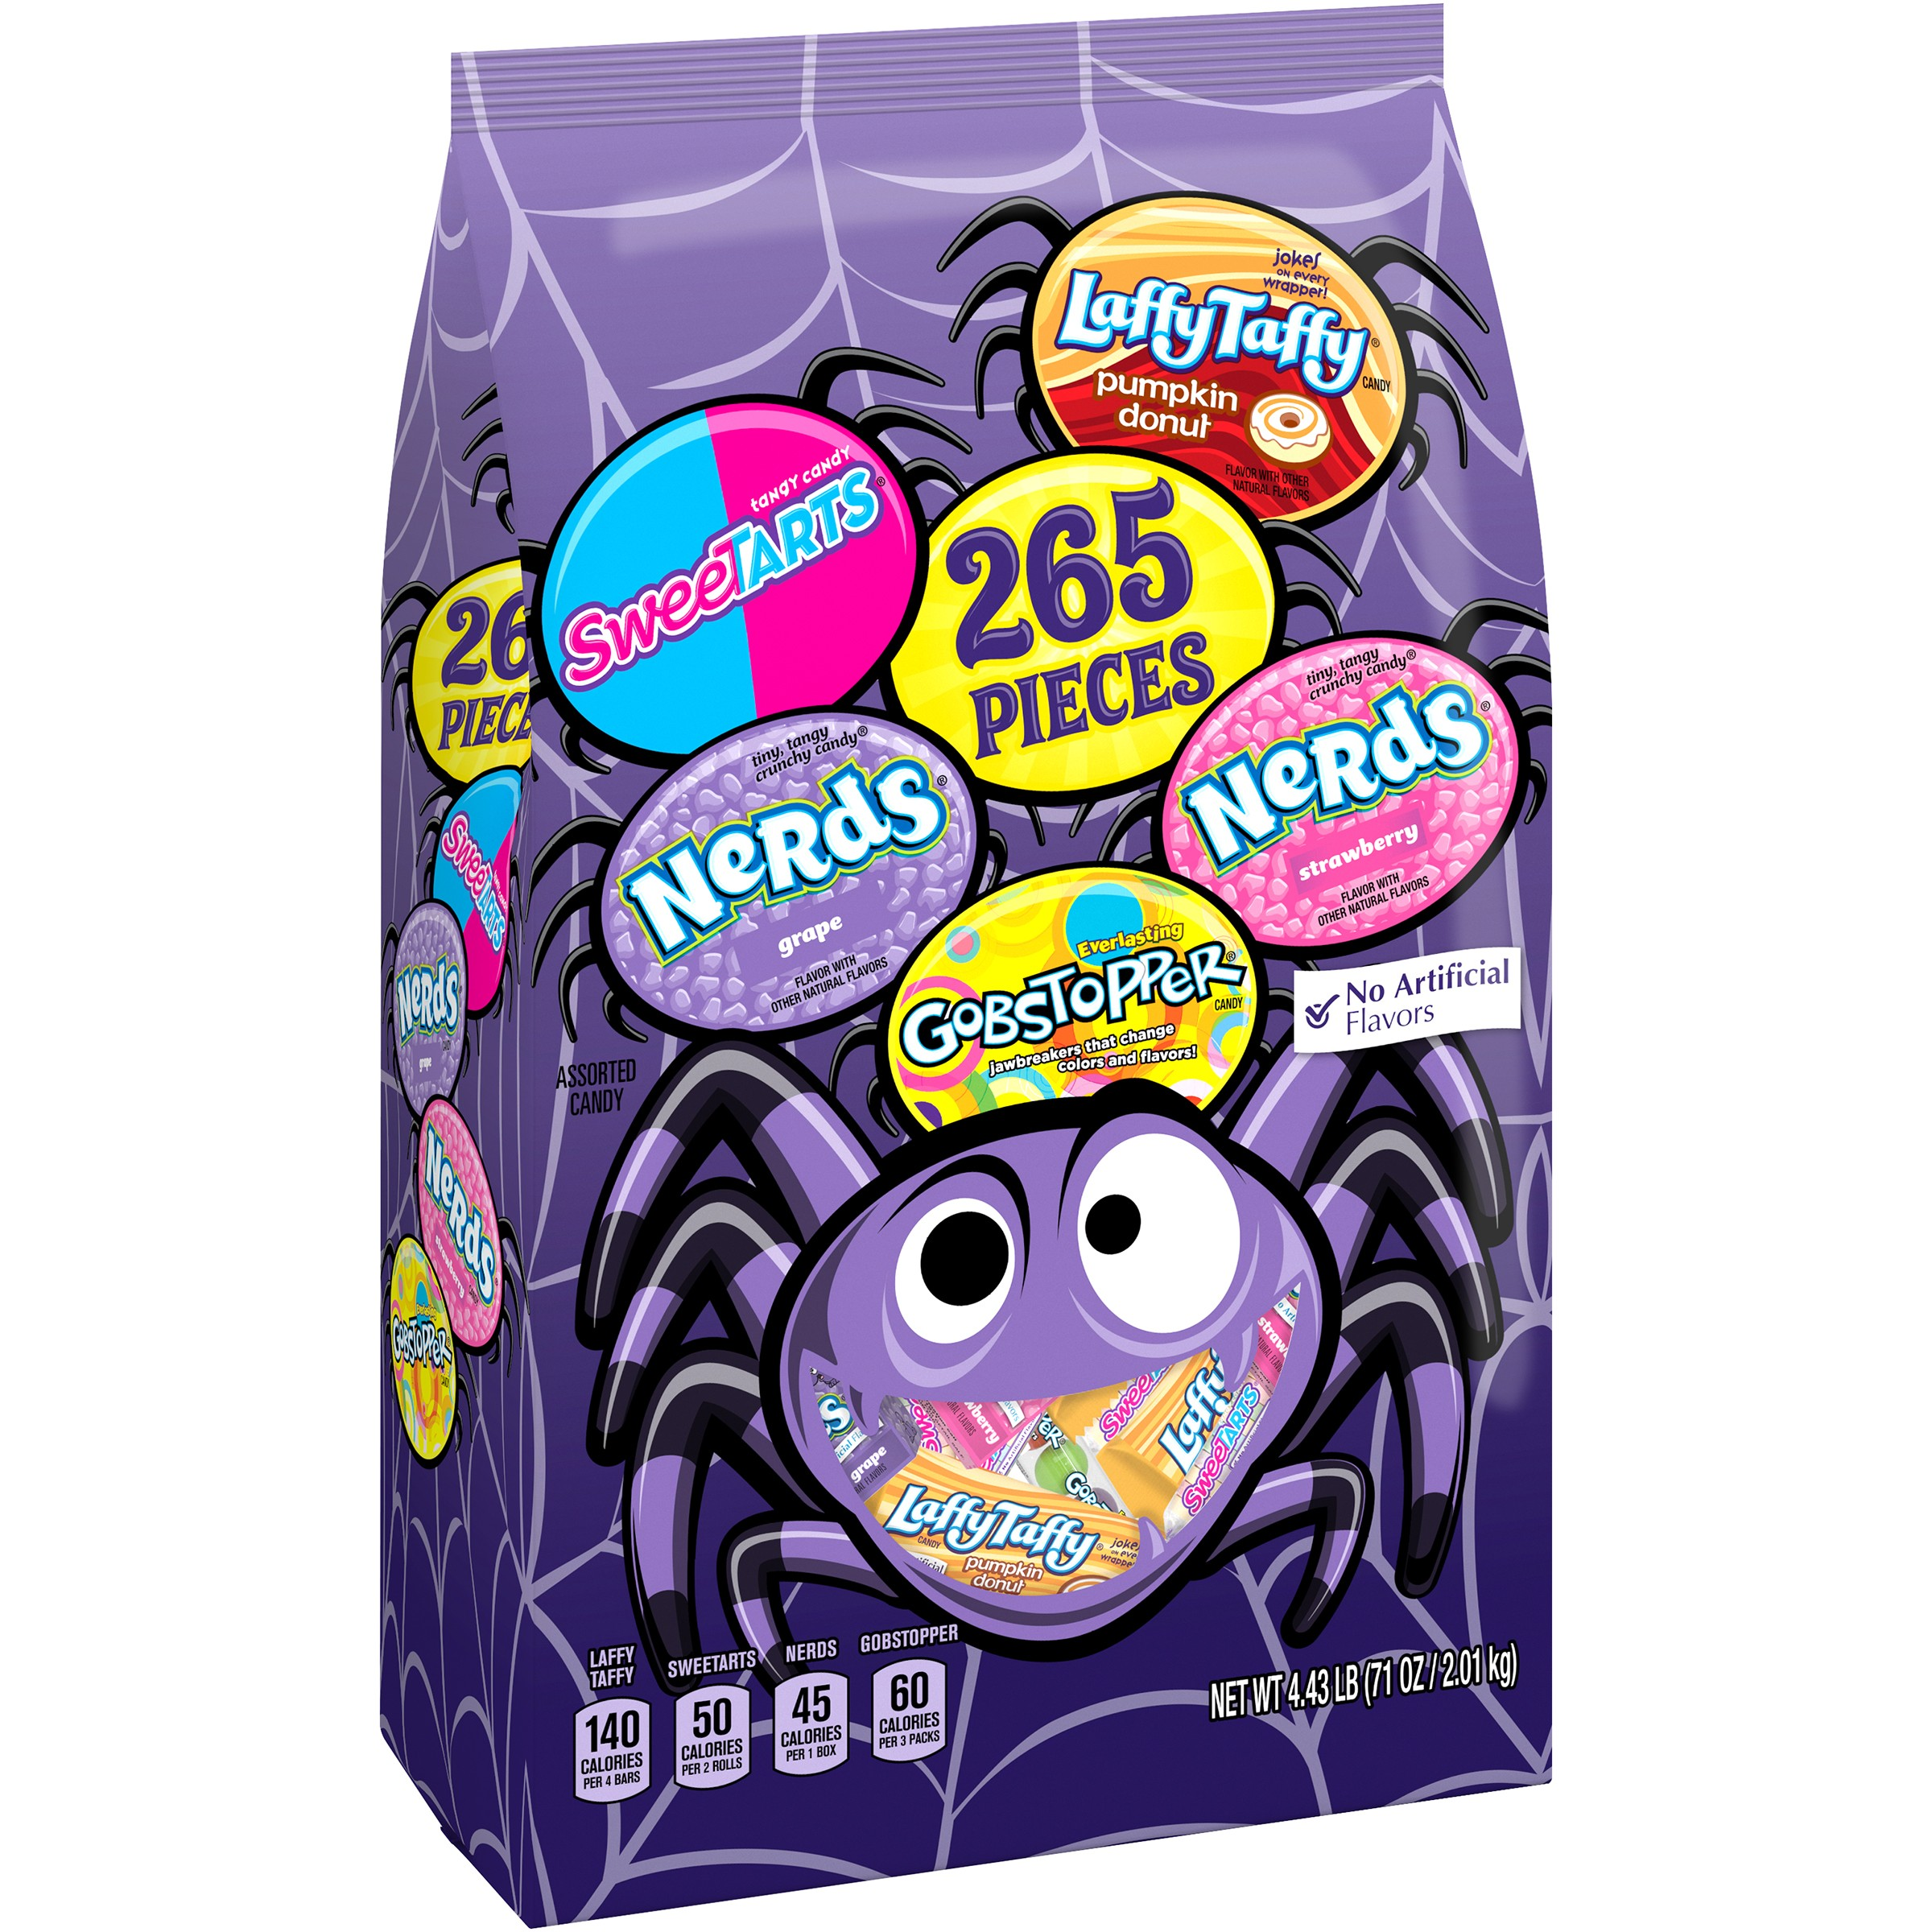 NESTLE Assorted Halloween Candy Sugar 265 pieces, 71 oz Bag